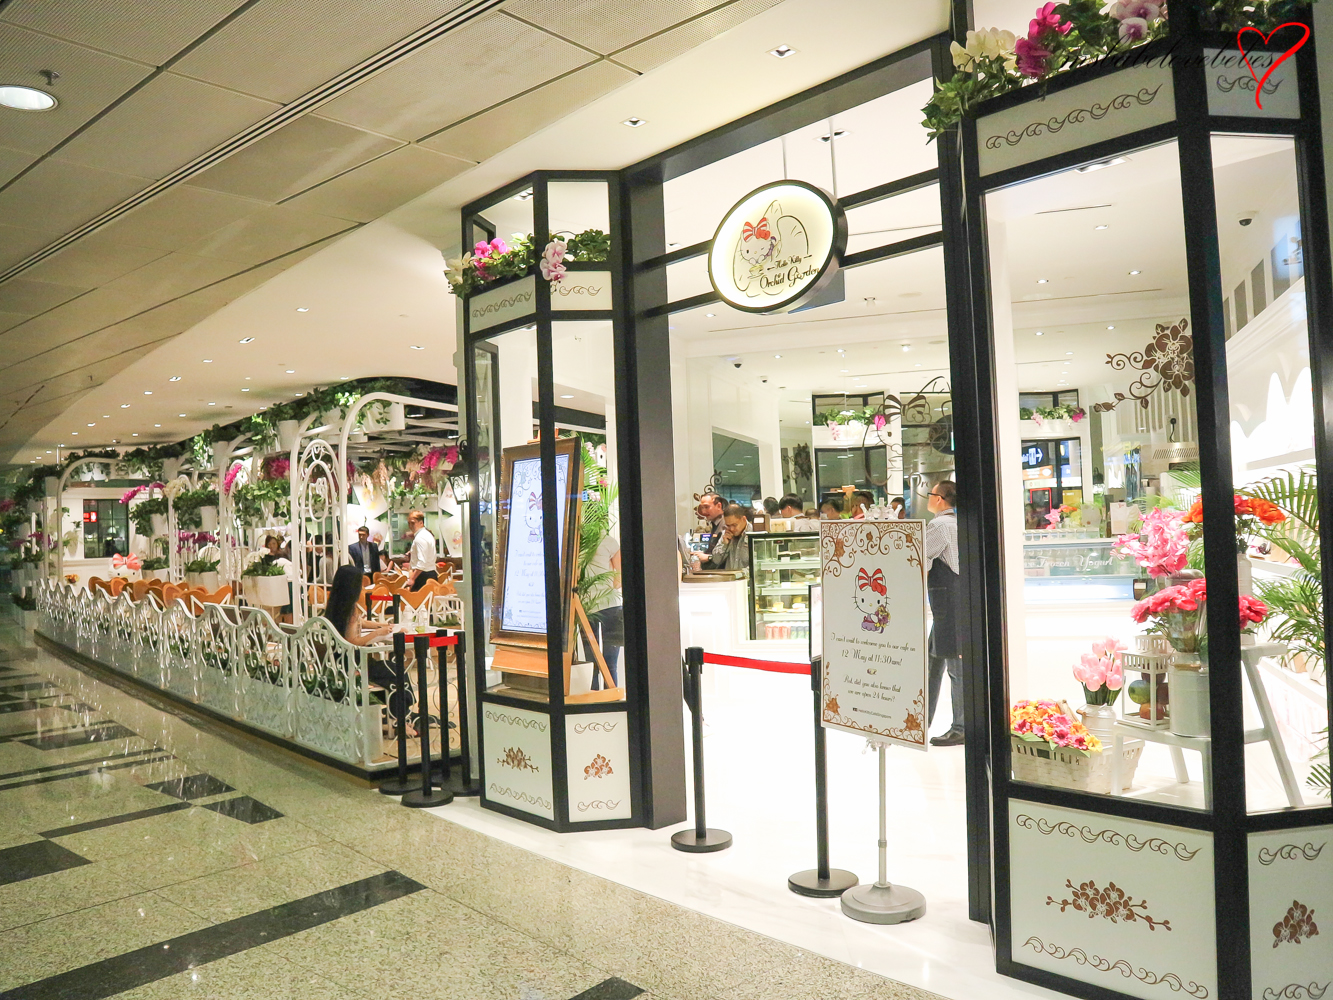 Msbabelovebebes celestia faith chong hello kitty orchid garden opens at changi airport - Hello this is my new picture garden interior ...